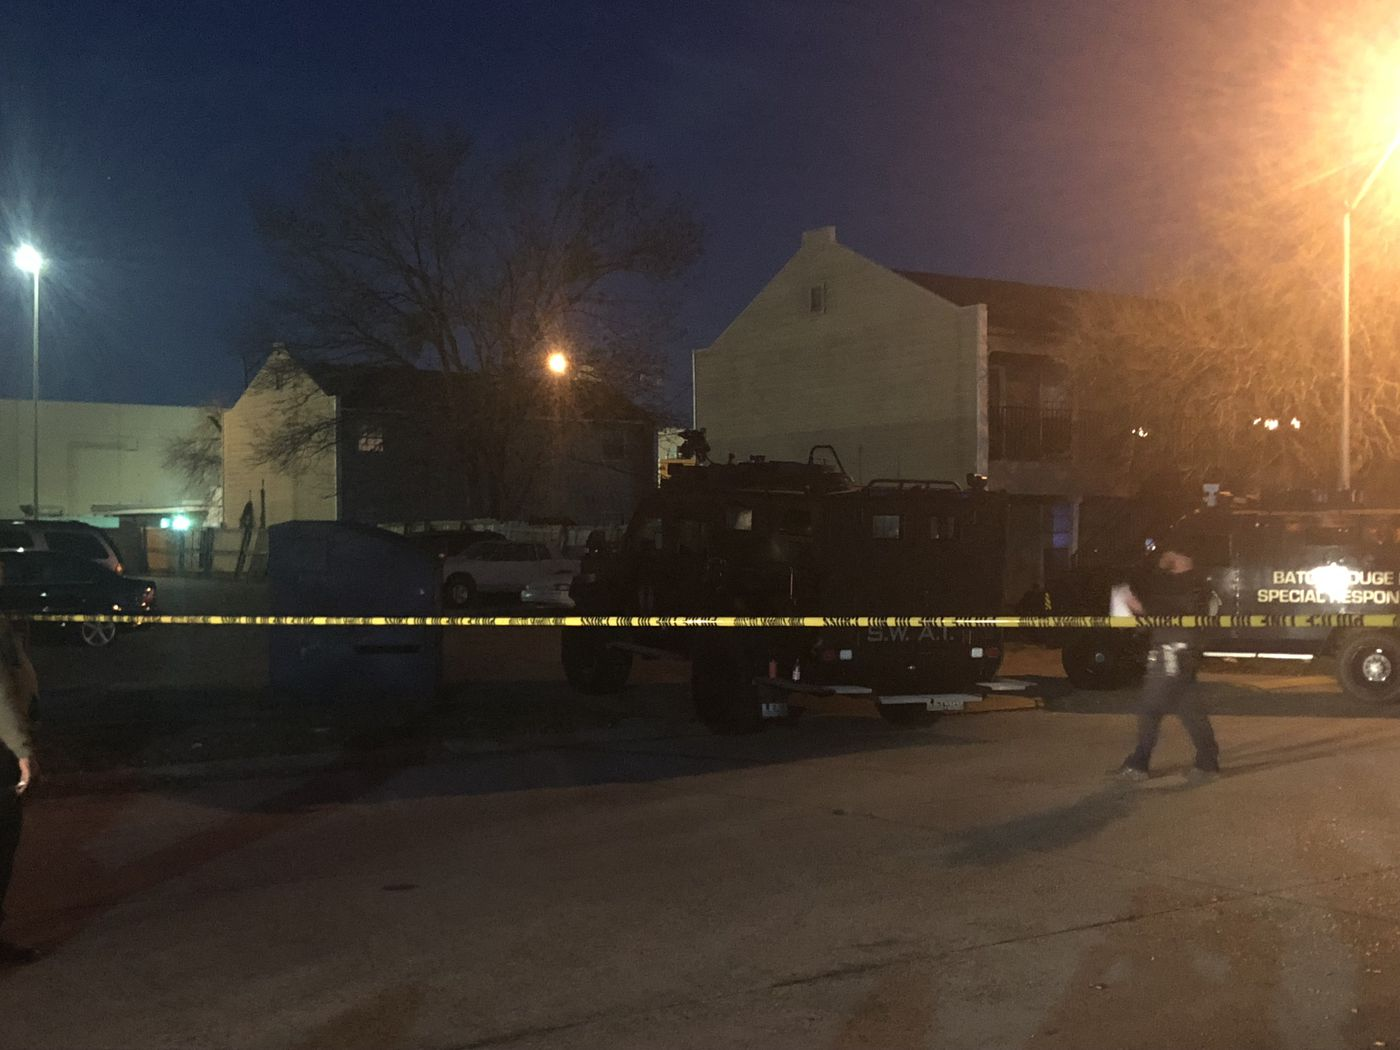 Suspect In Custody After Standoff Situation On Monet Drive